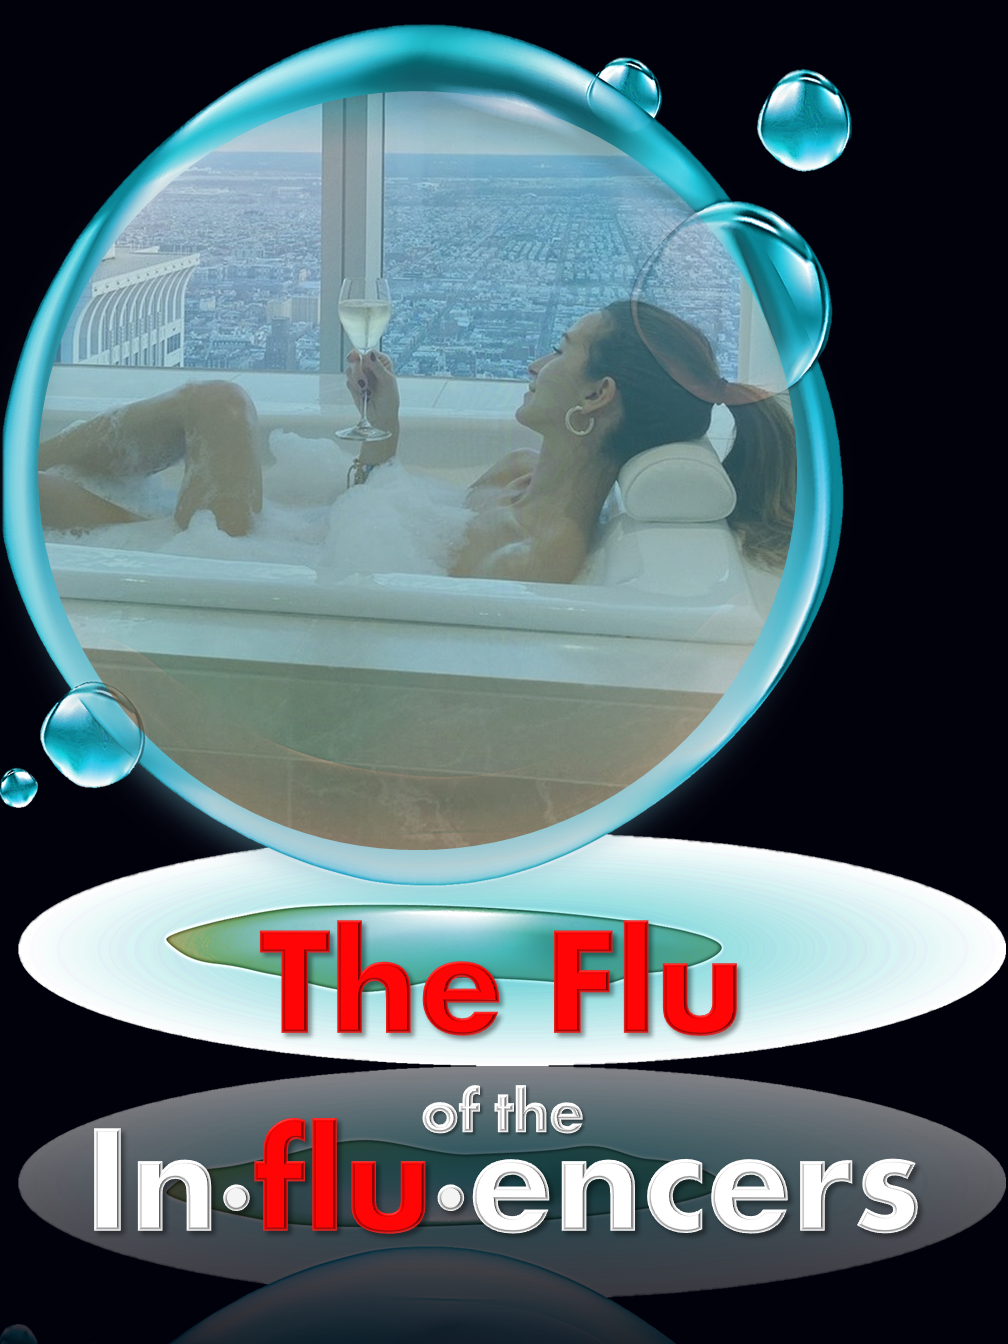 The Flu of the In•flu•encers